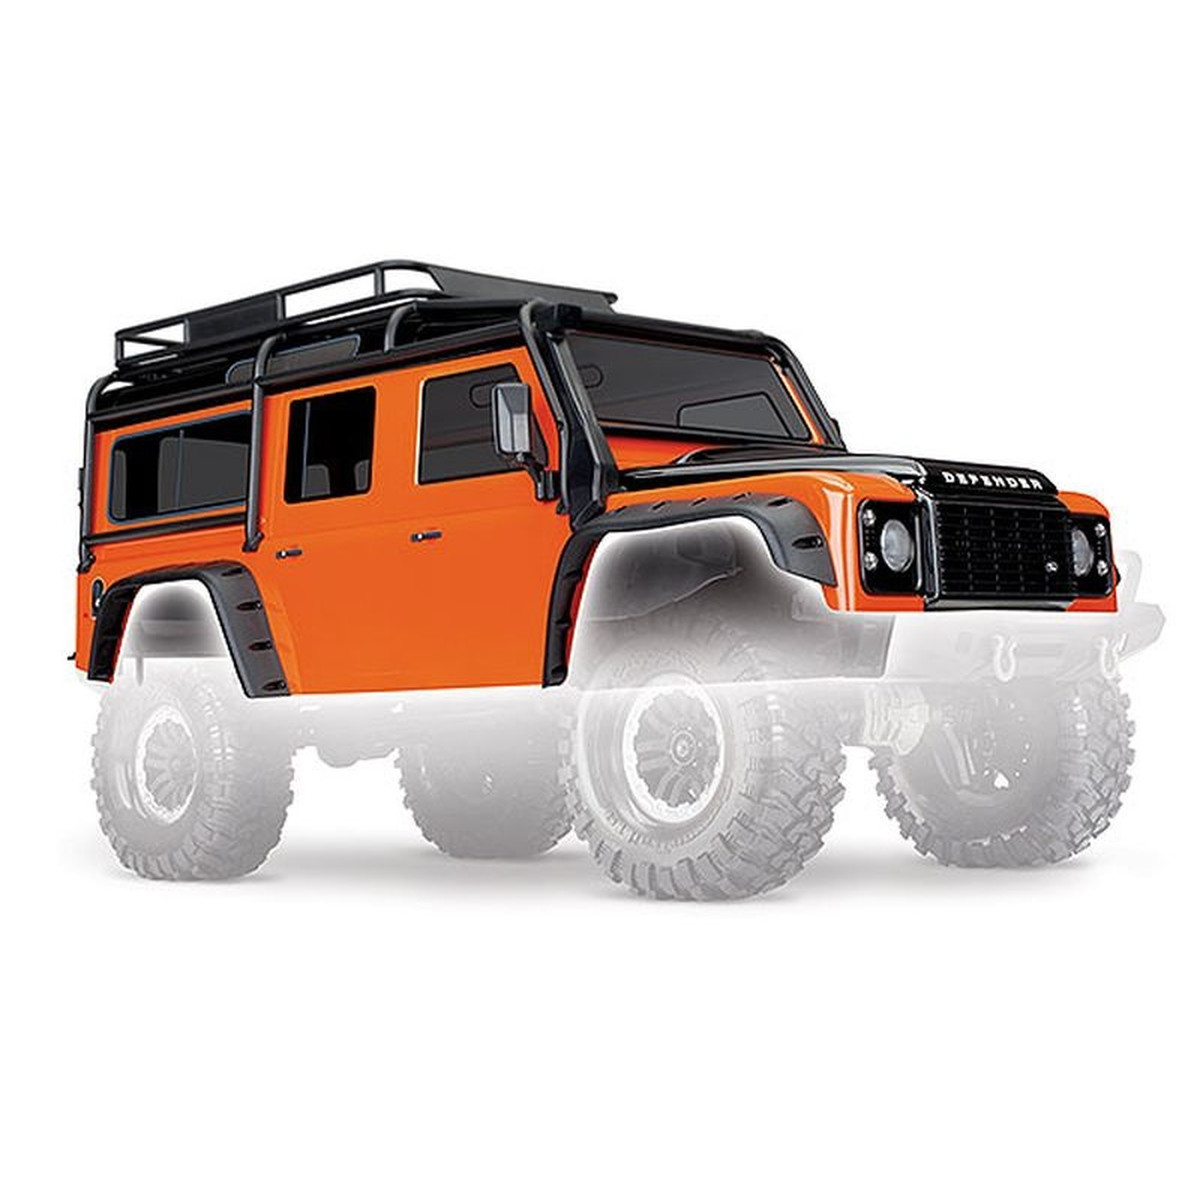 Rc Land Rover Defender Karosserie : traxxas 8011a karosserie land rover defender adventure edition orange ~ Aude.kayakingforconservation.com Haus und Dekorationen